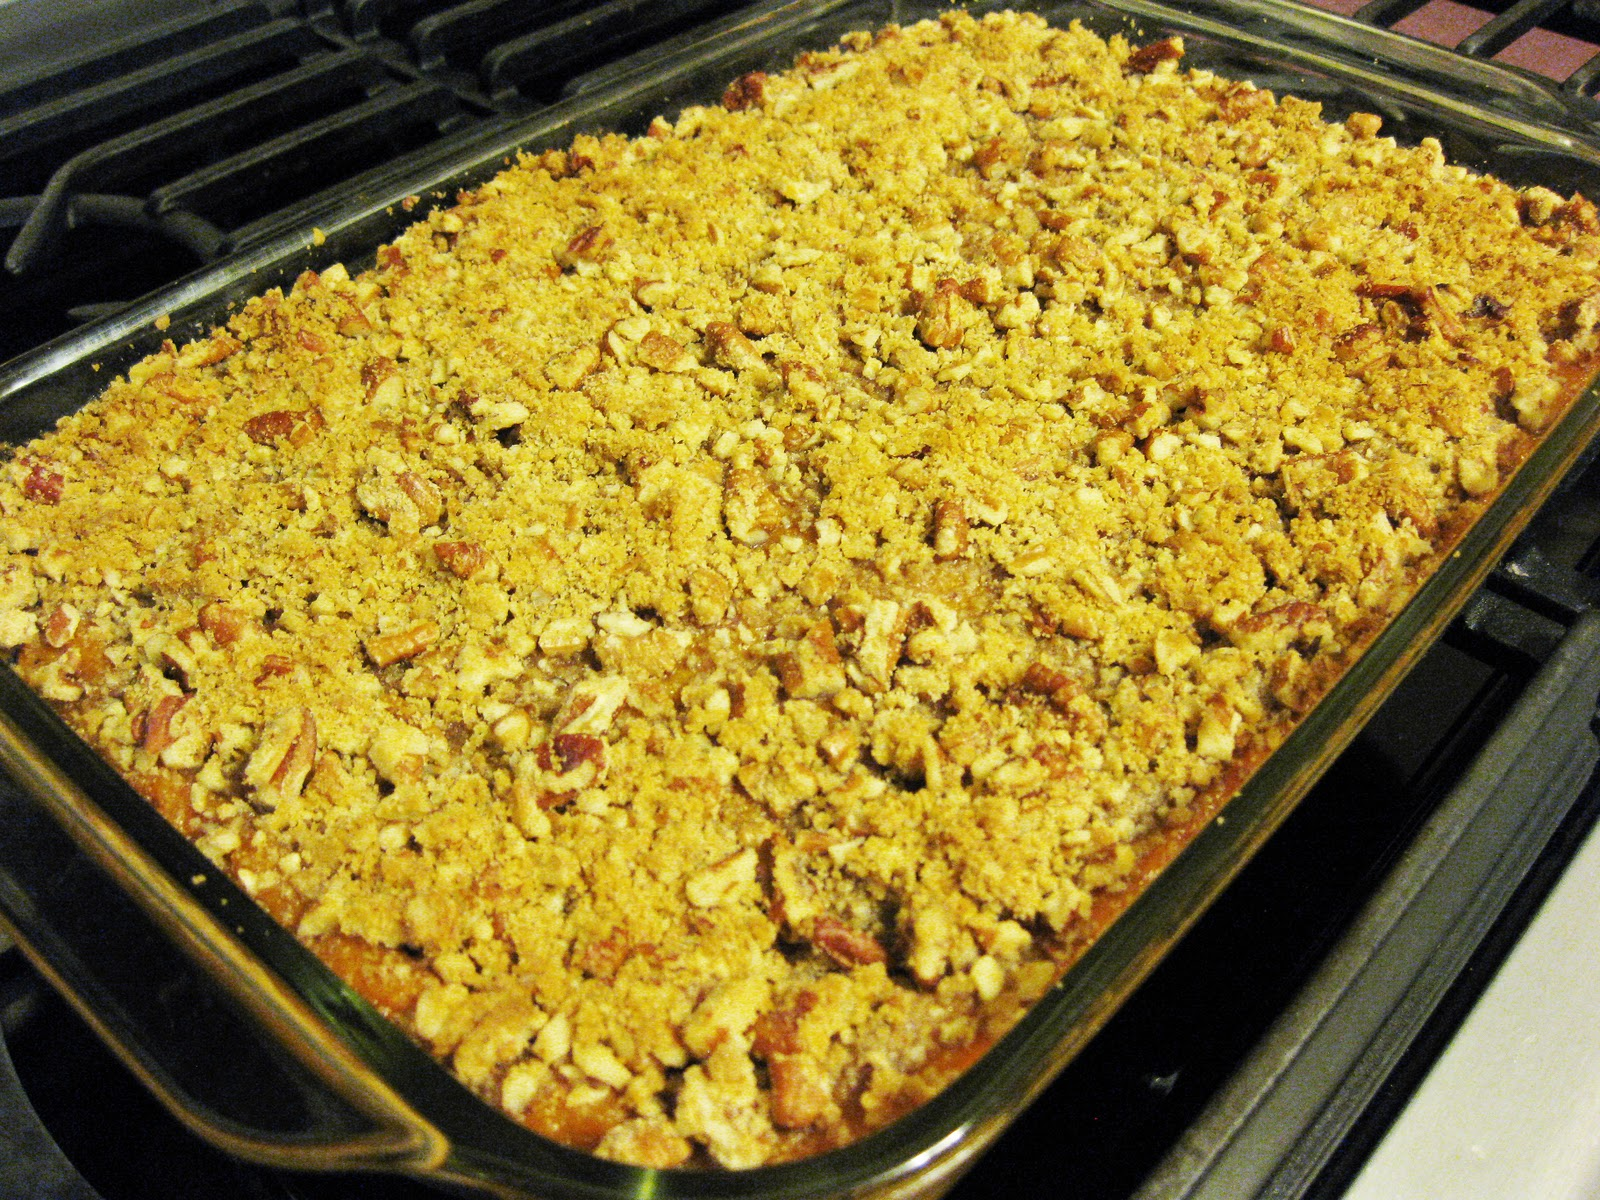 ... pecan topping sweet potato casserole sweet potato casserole sweet